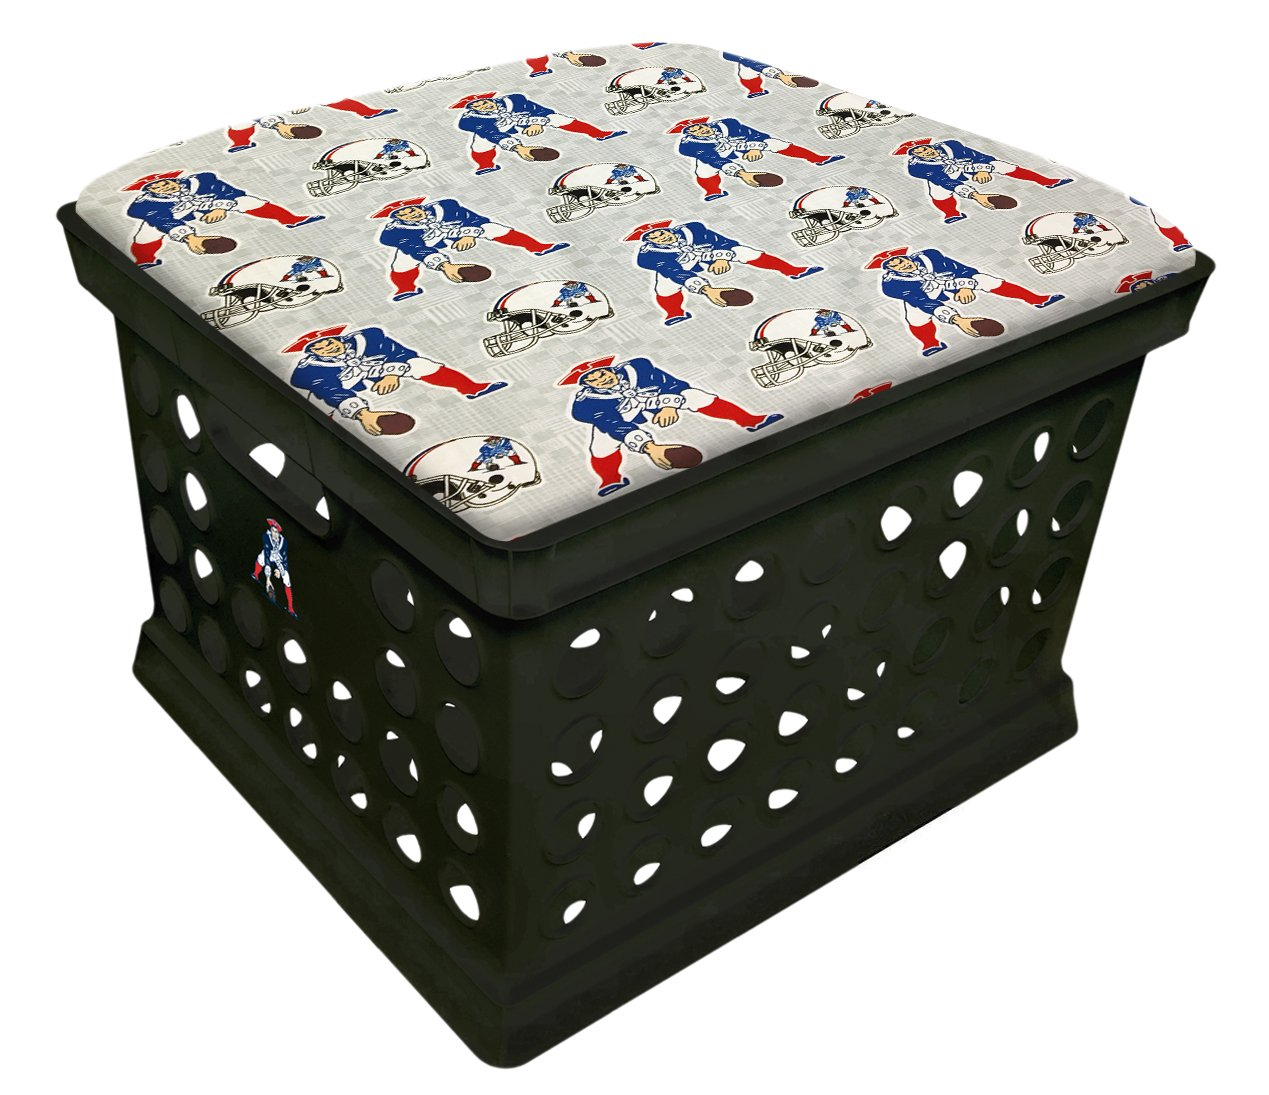 Black Utility Crate Storage Container Ottoman Bench Stool for Office/Home/School/Preschools with Your Choice of a Football Team Seat Cushion, Decal and a Free Flashlight! (Patriots Guard-Guard)